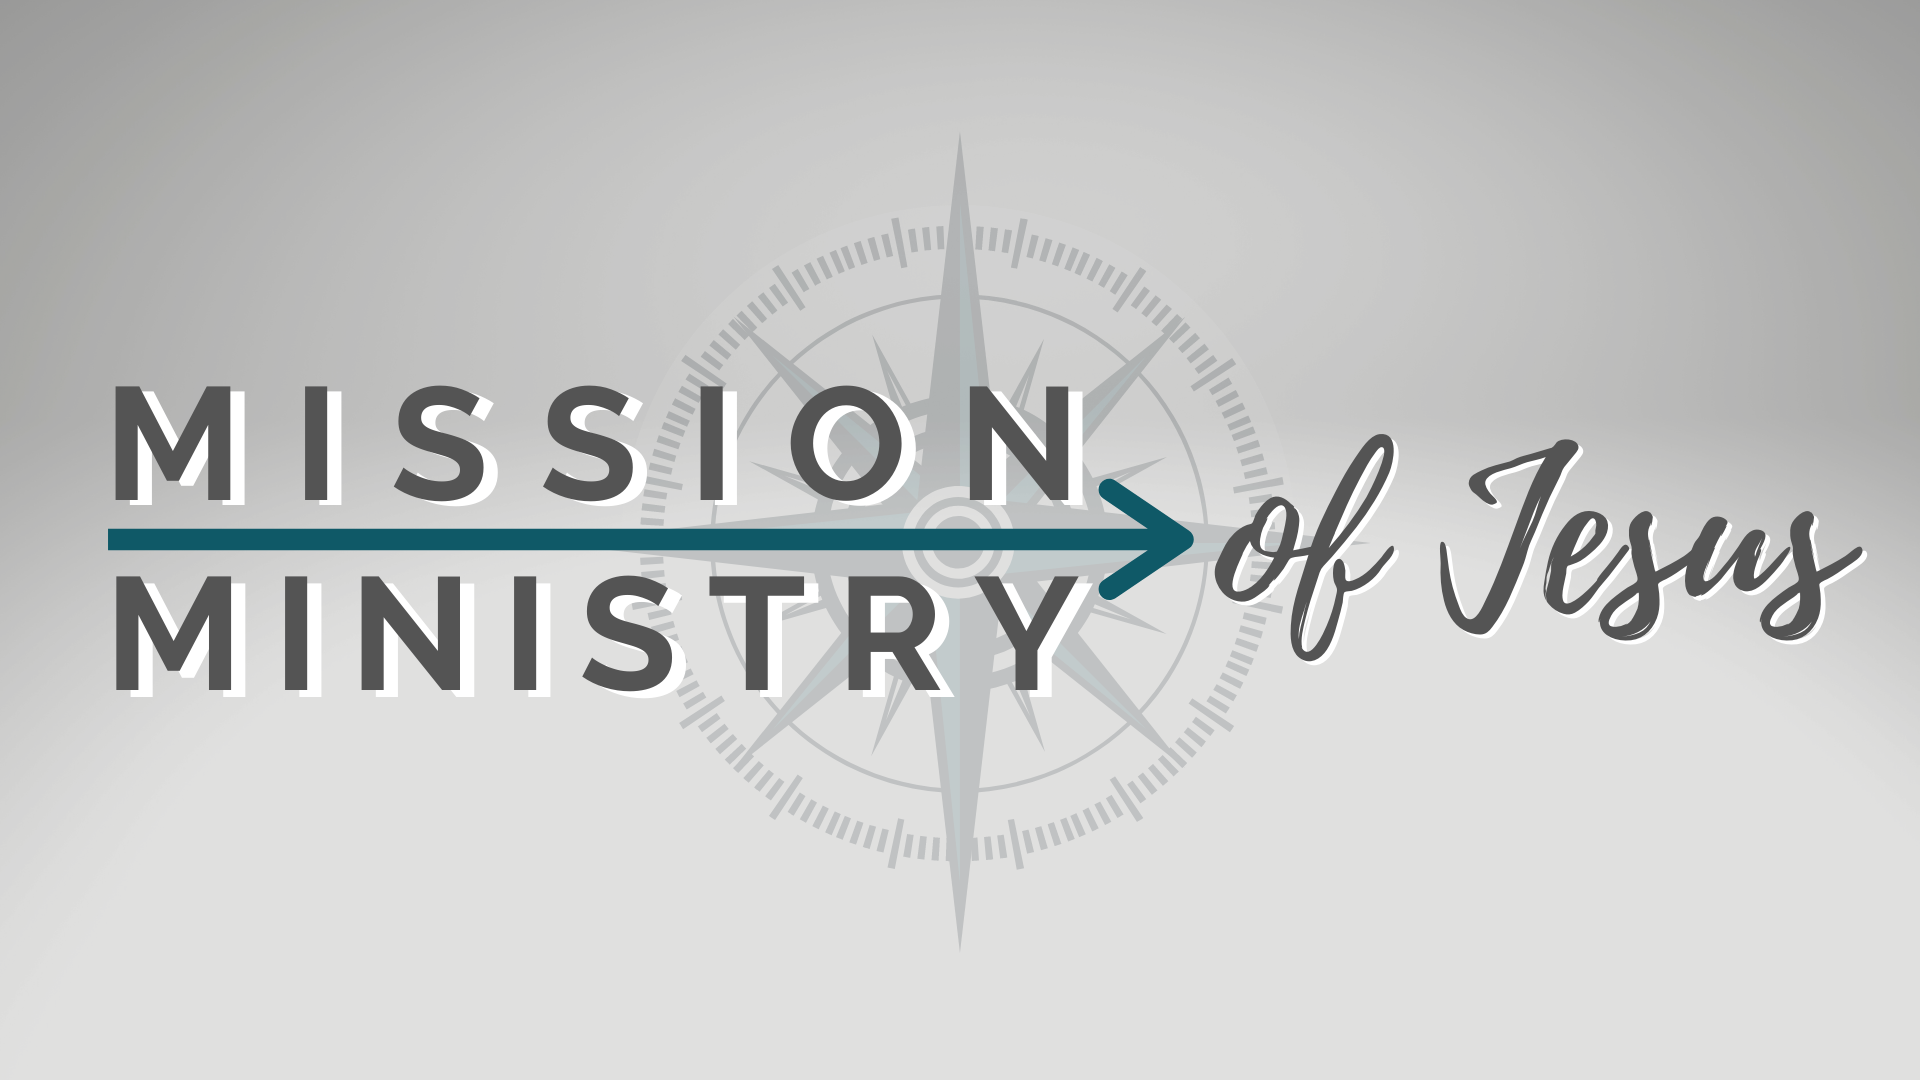 The Ministry and Mission of Jesus